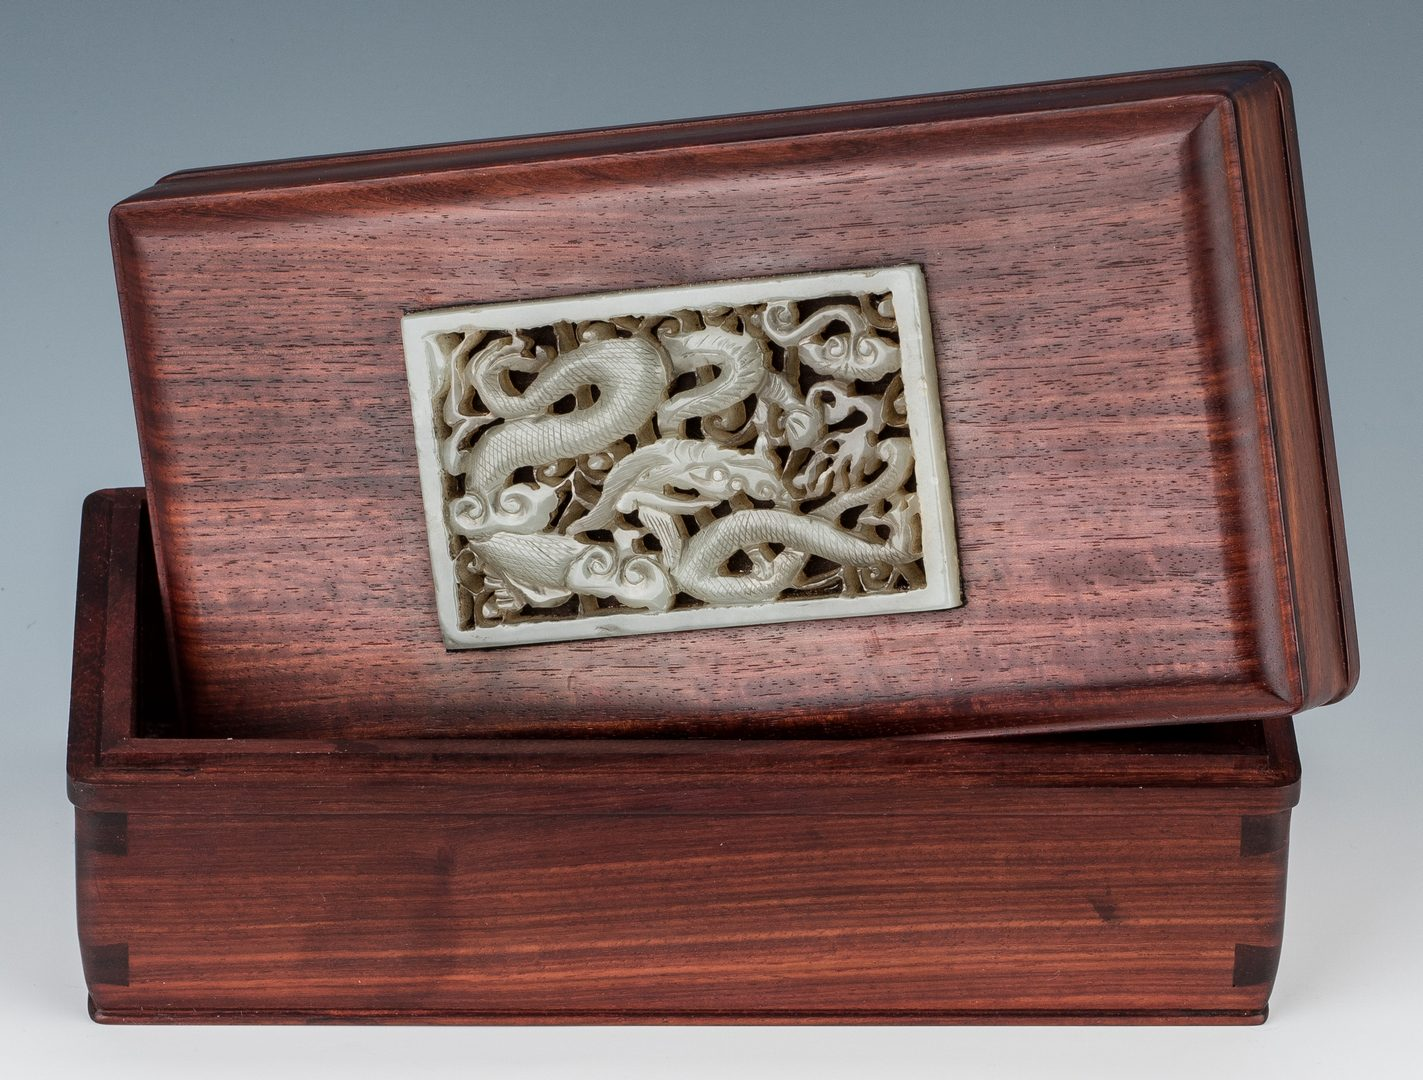 Lot 405: 3 Chinese Carved Jade items, incl. Inlaid Box